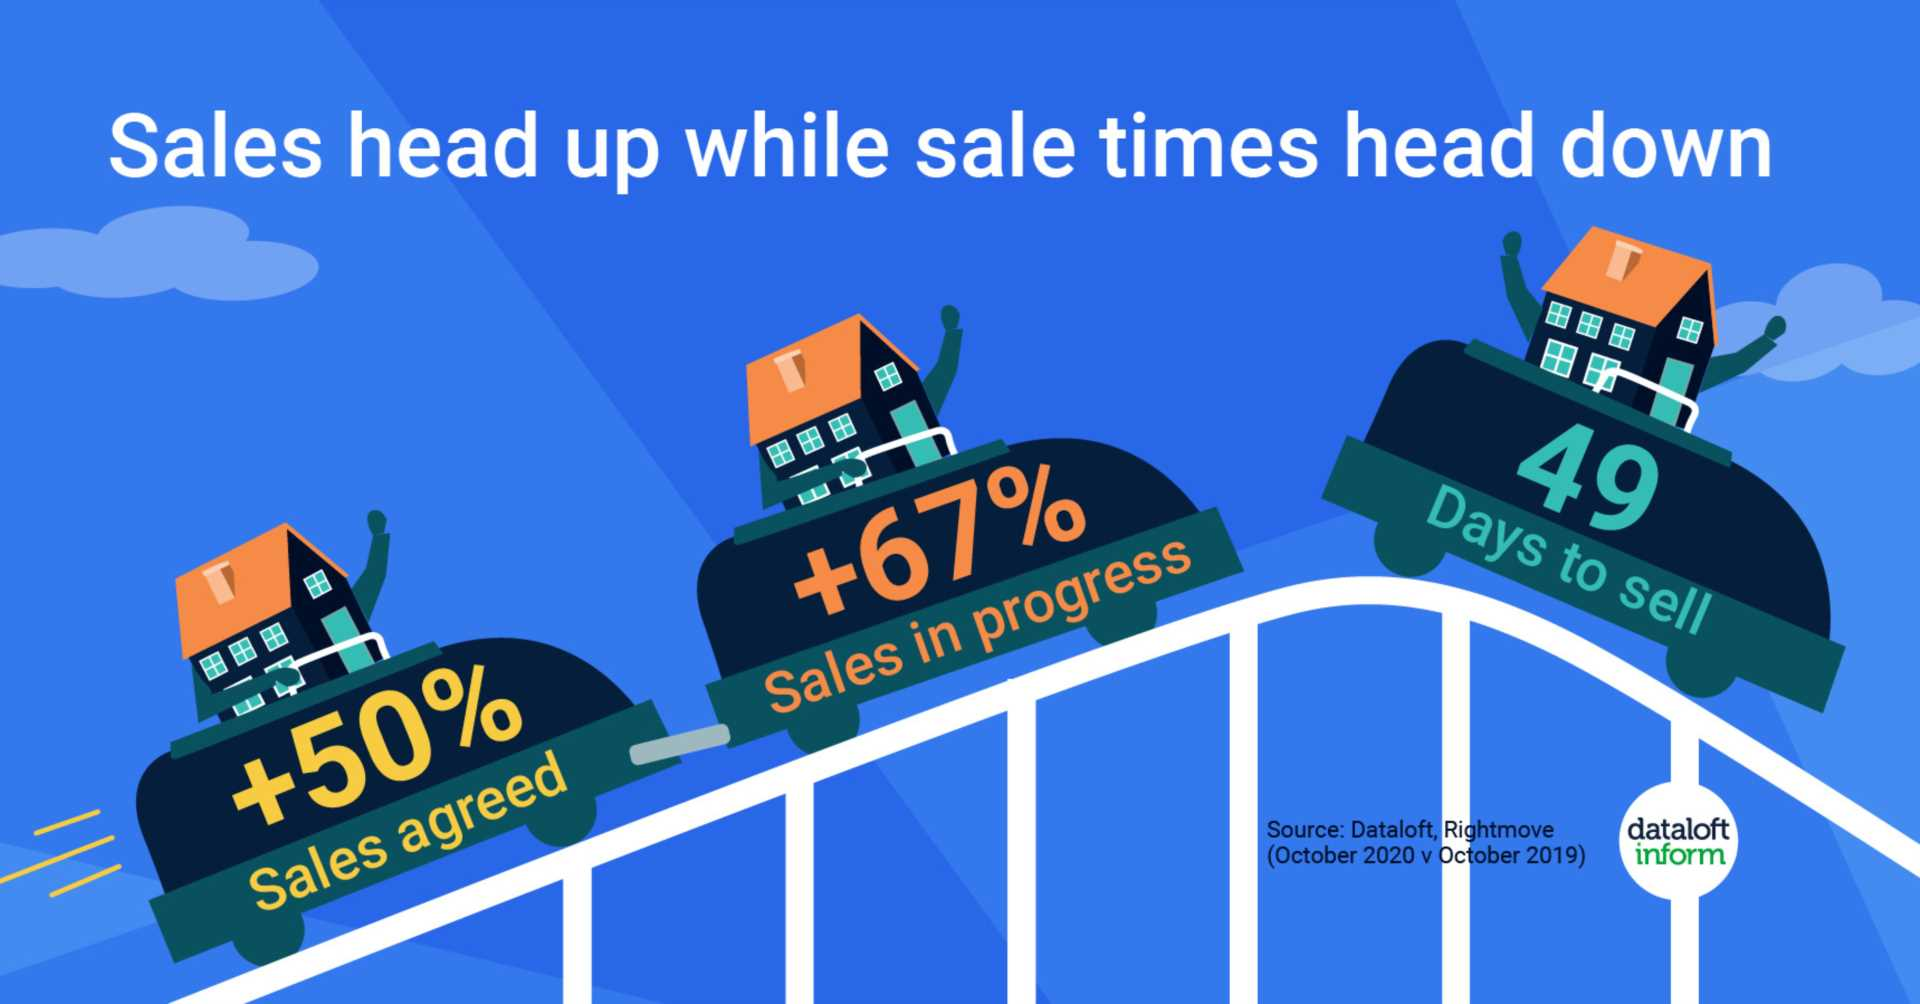 Sales head up while sale time heads down